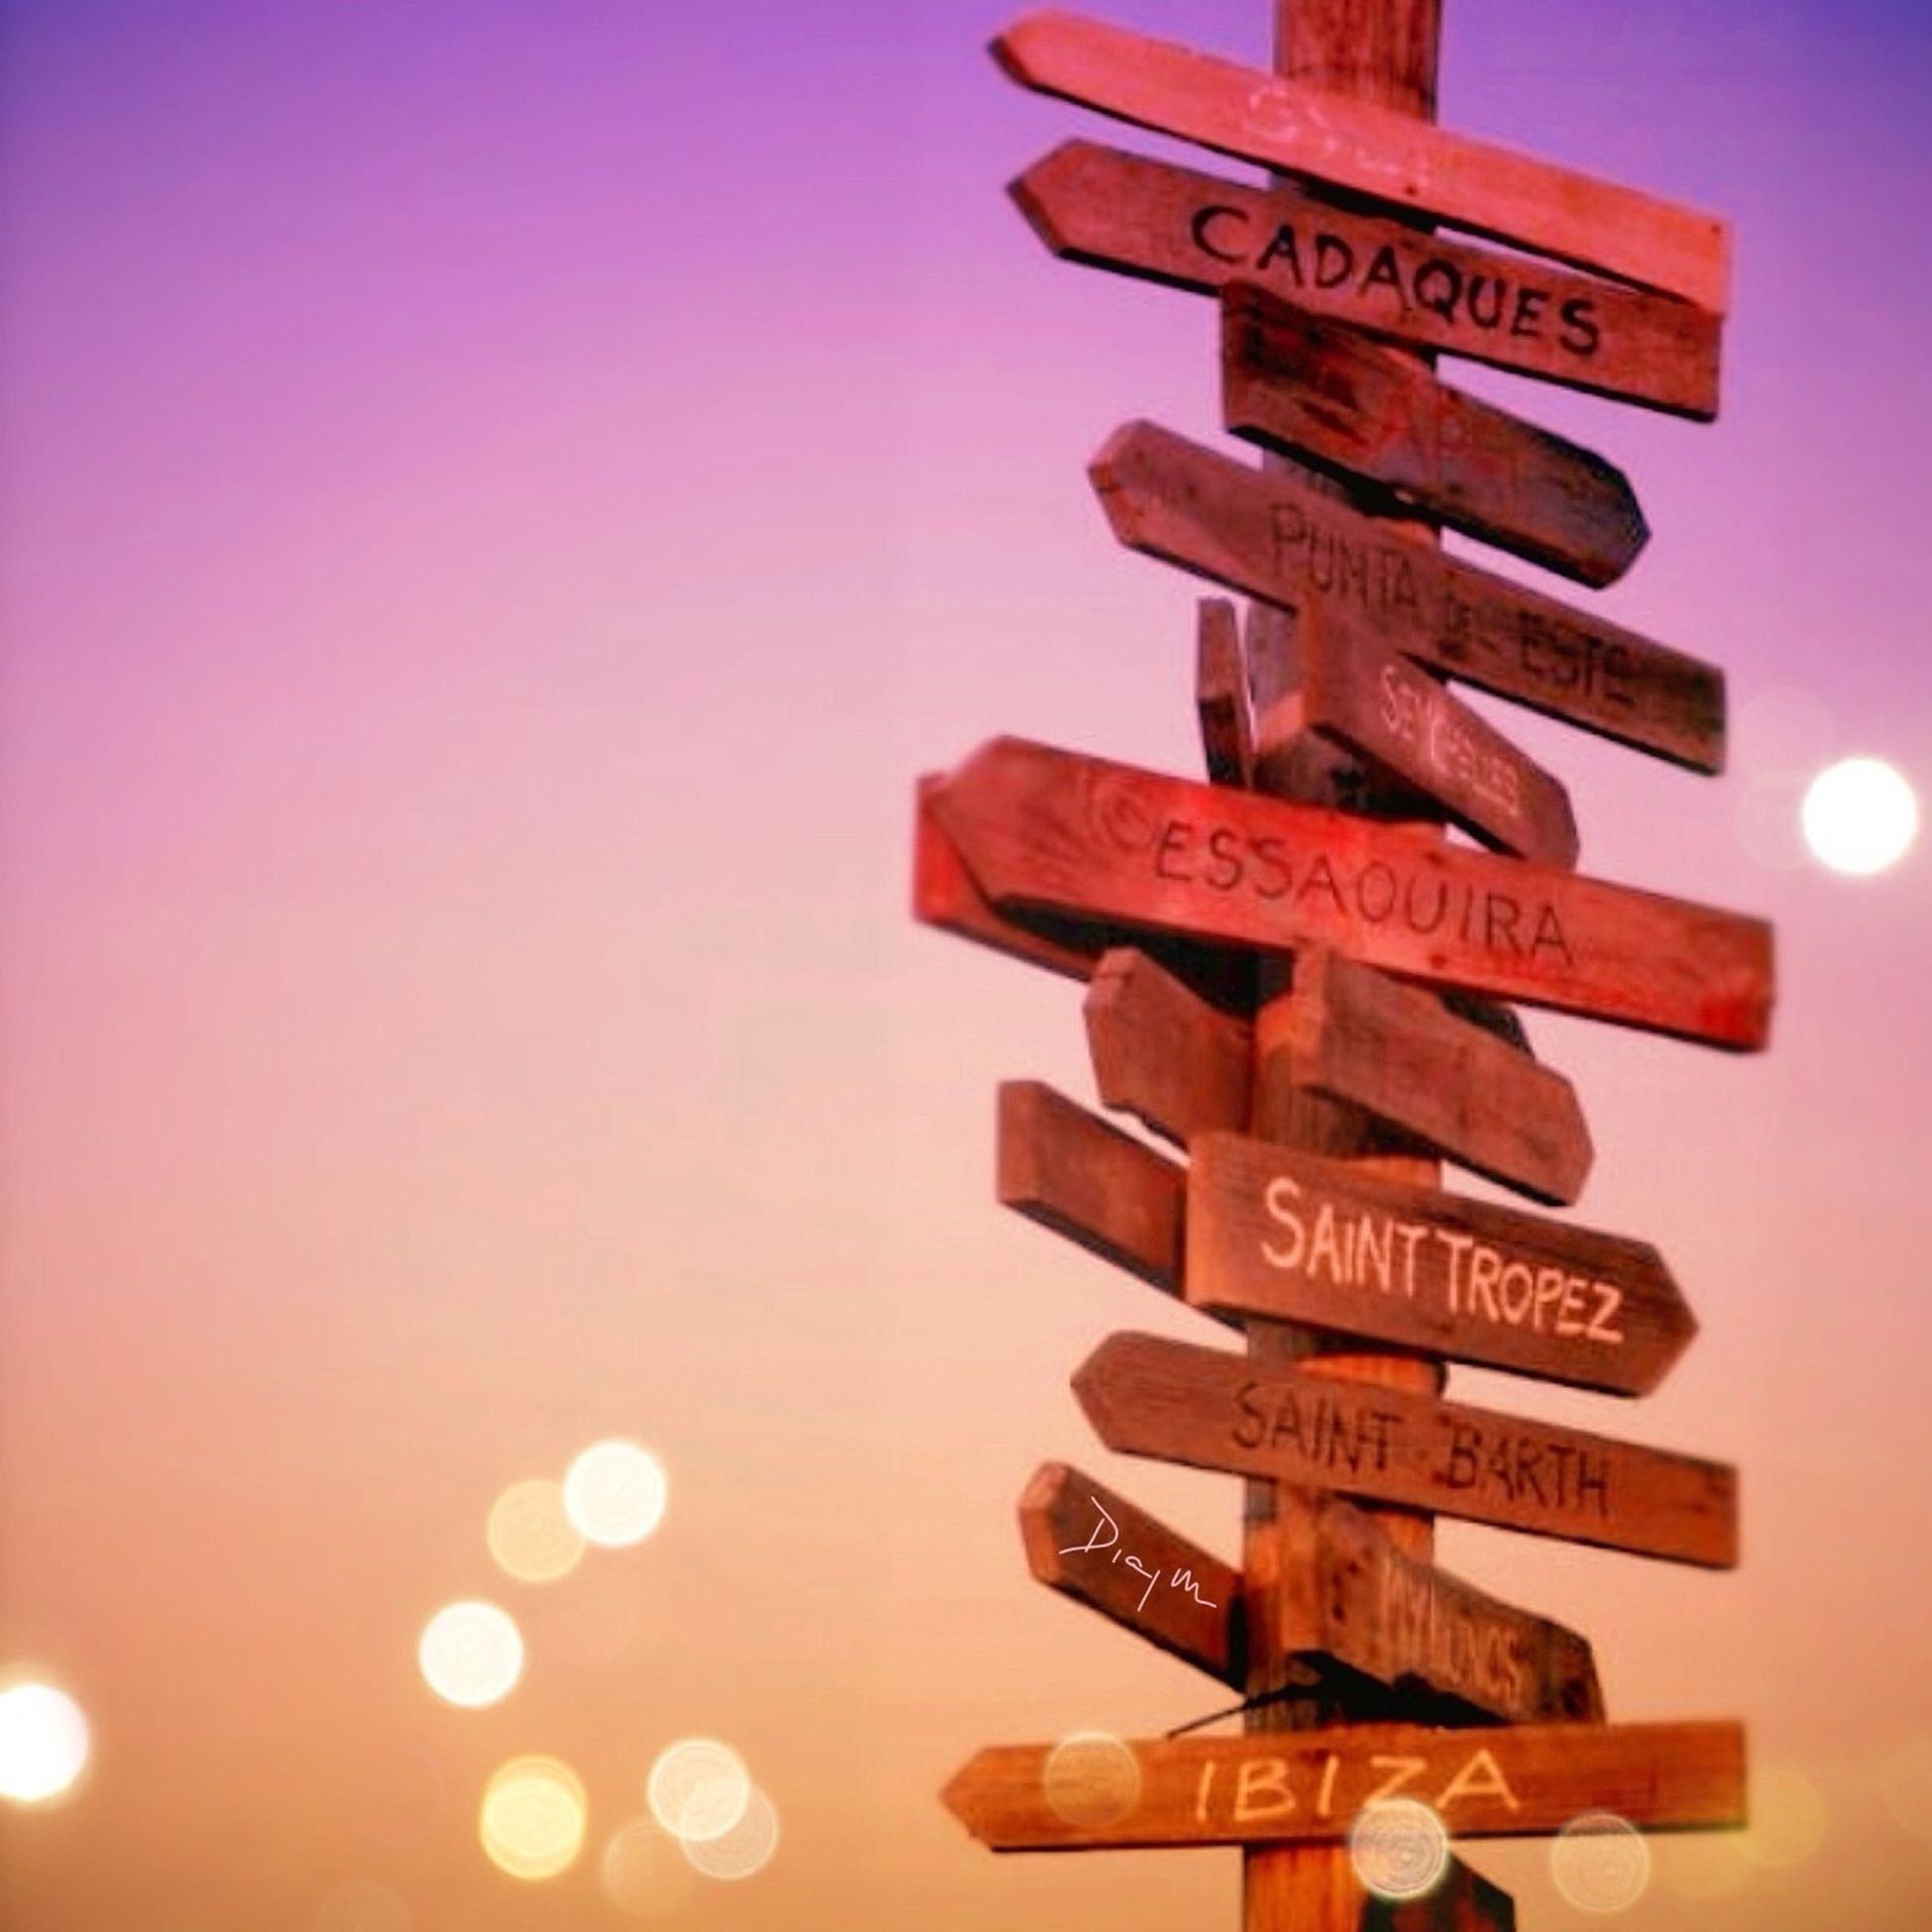 text, western script, communication, guidance, sign, information sign, capital letter, non-western script, information, low angle view, arrow symbol, road sign, illuminated, clear sky, direction, red, directional sign, number, no people, close-up